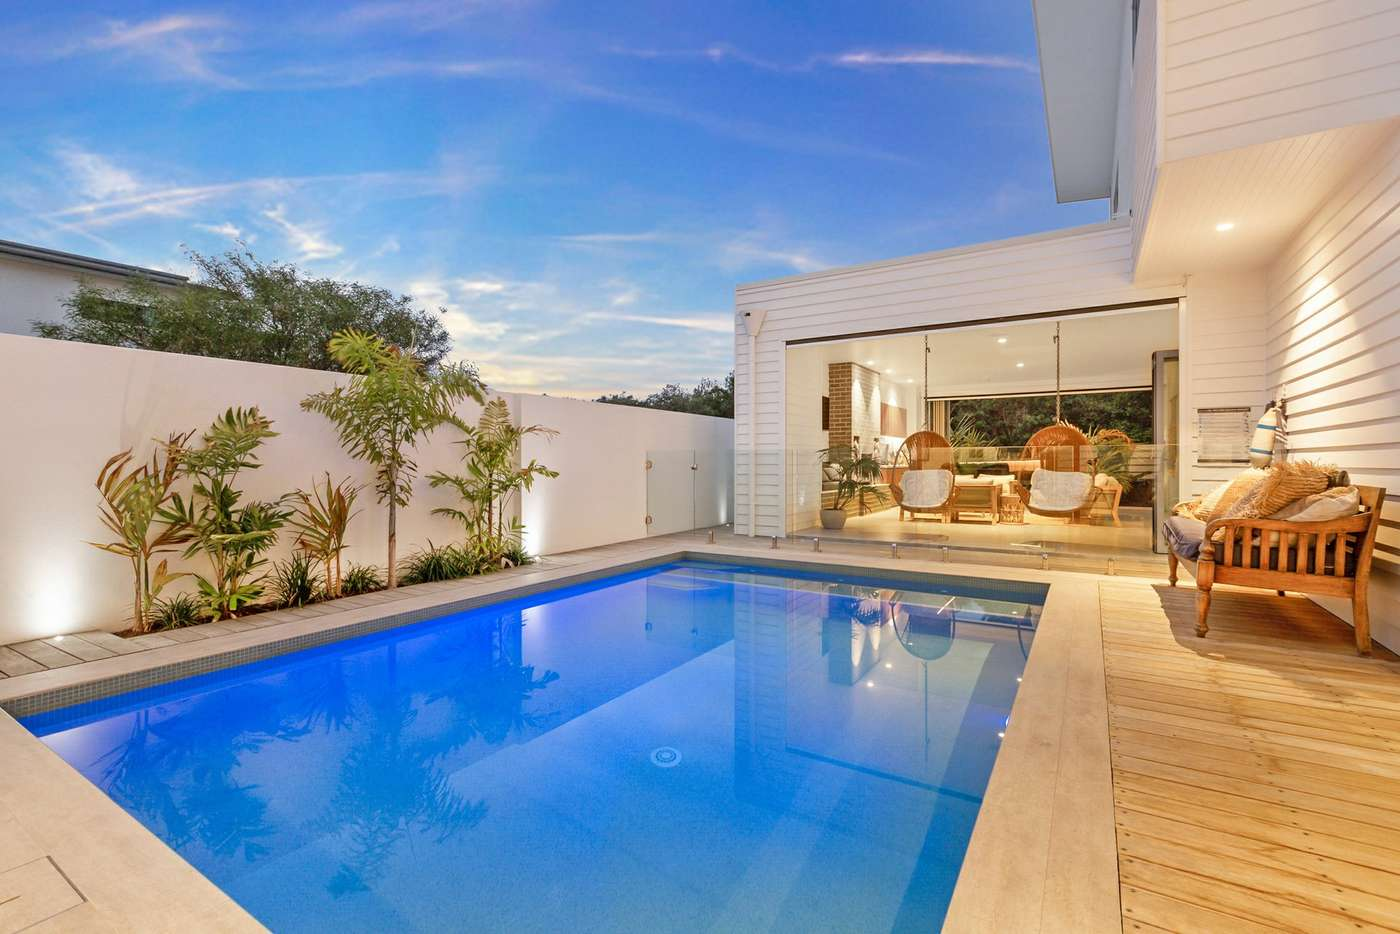 Main view of Homely house listing, 9 Cylinders Drive, Kingscliff NSW 2487